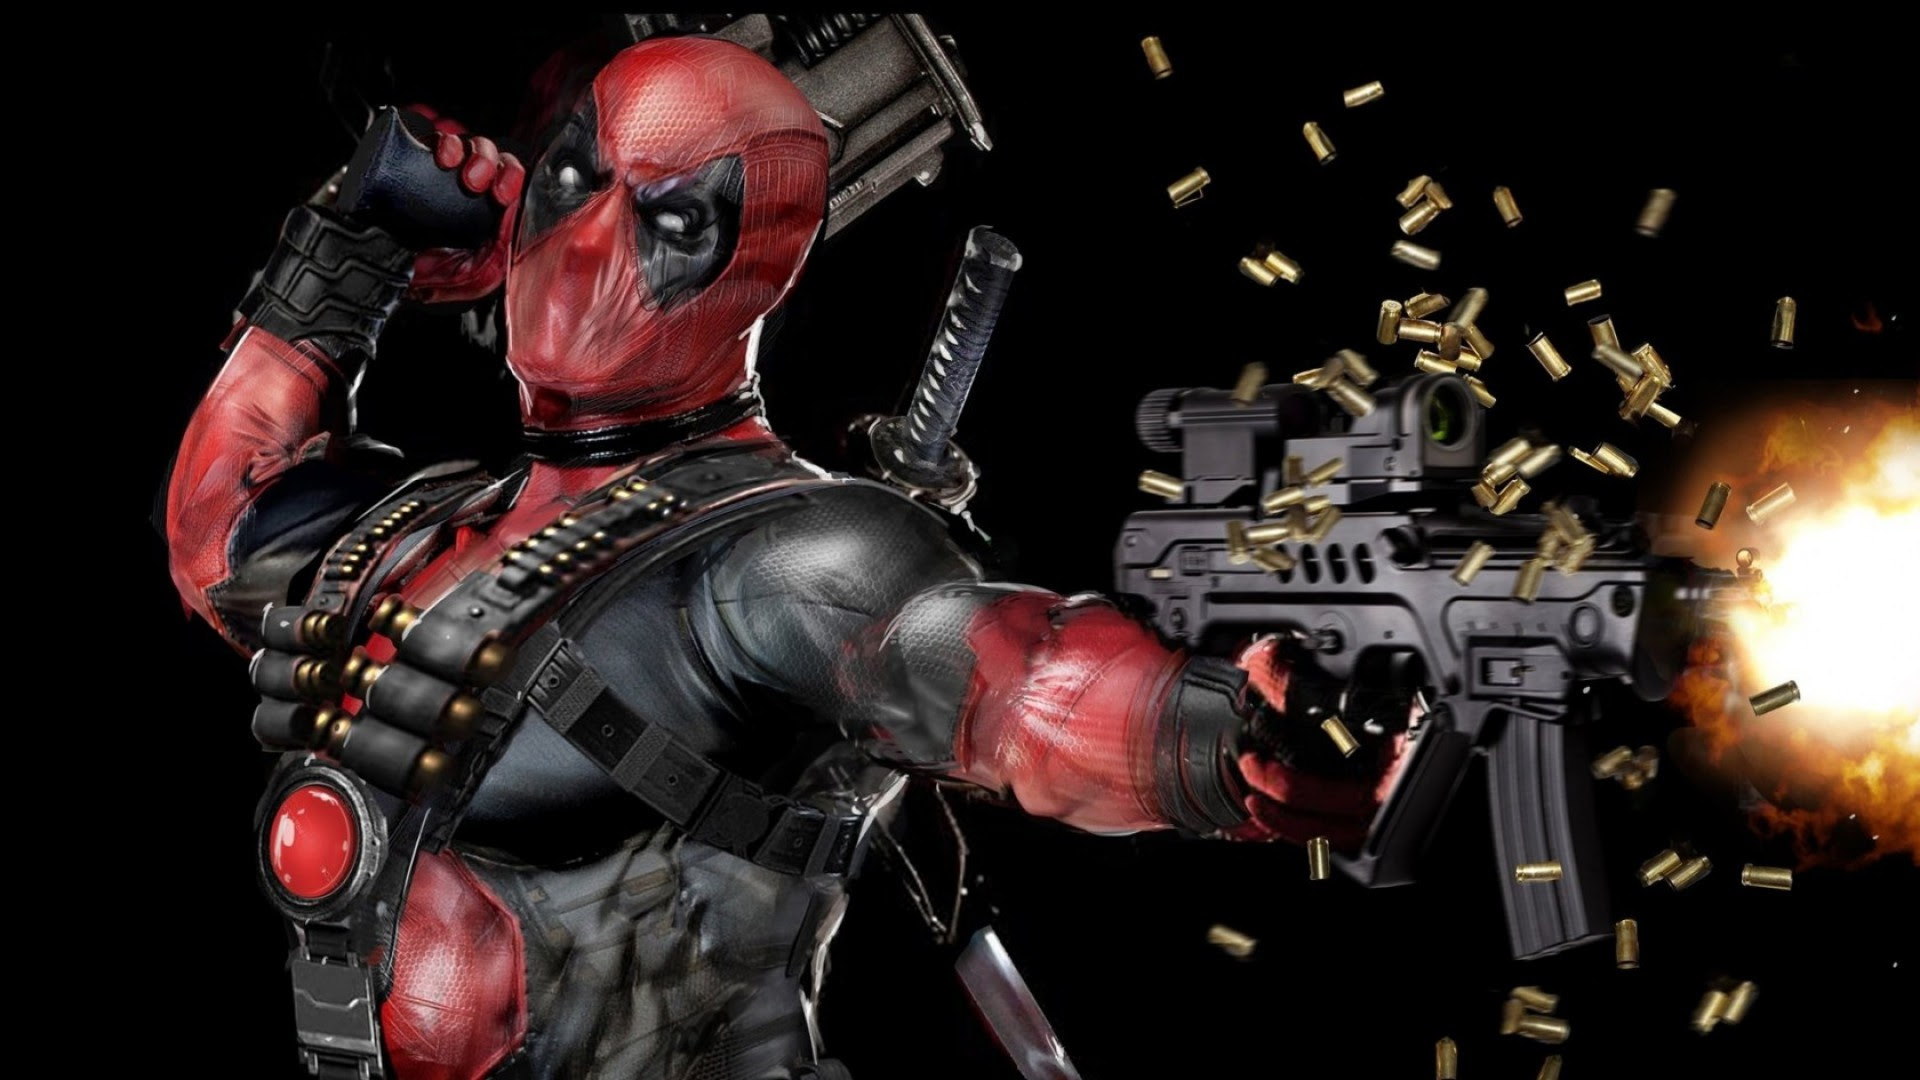 Wallpaper Hd Deadpool Desktop Wallpaper 4k